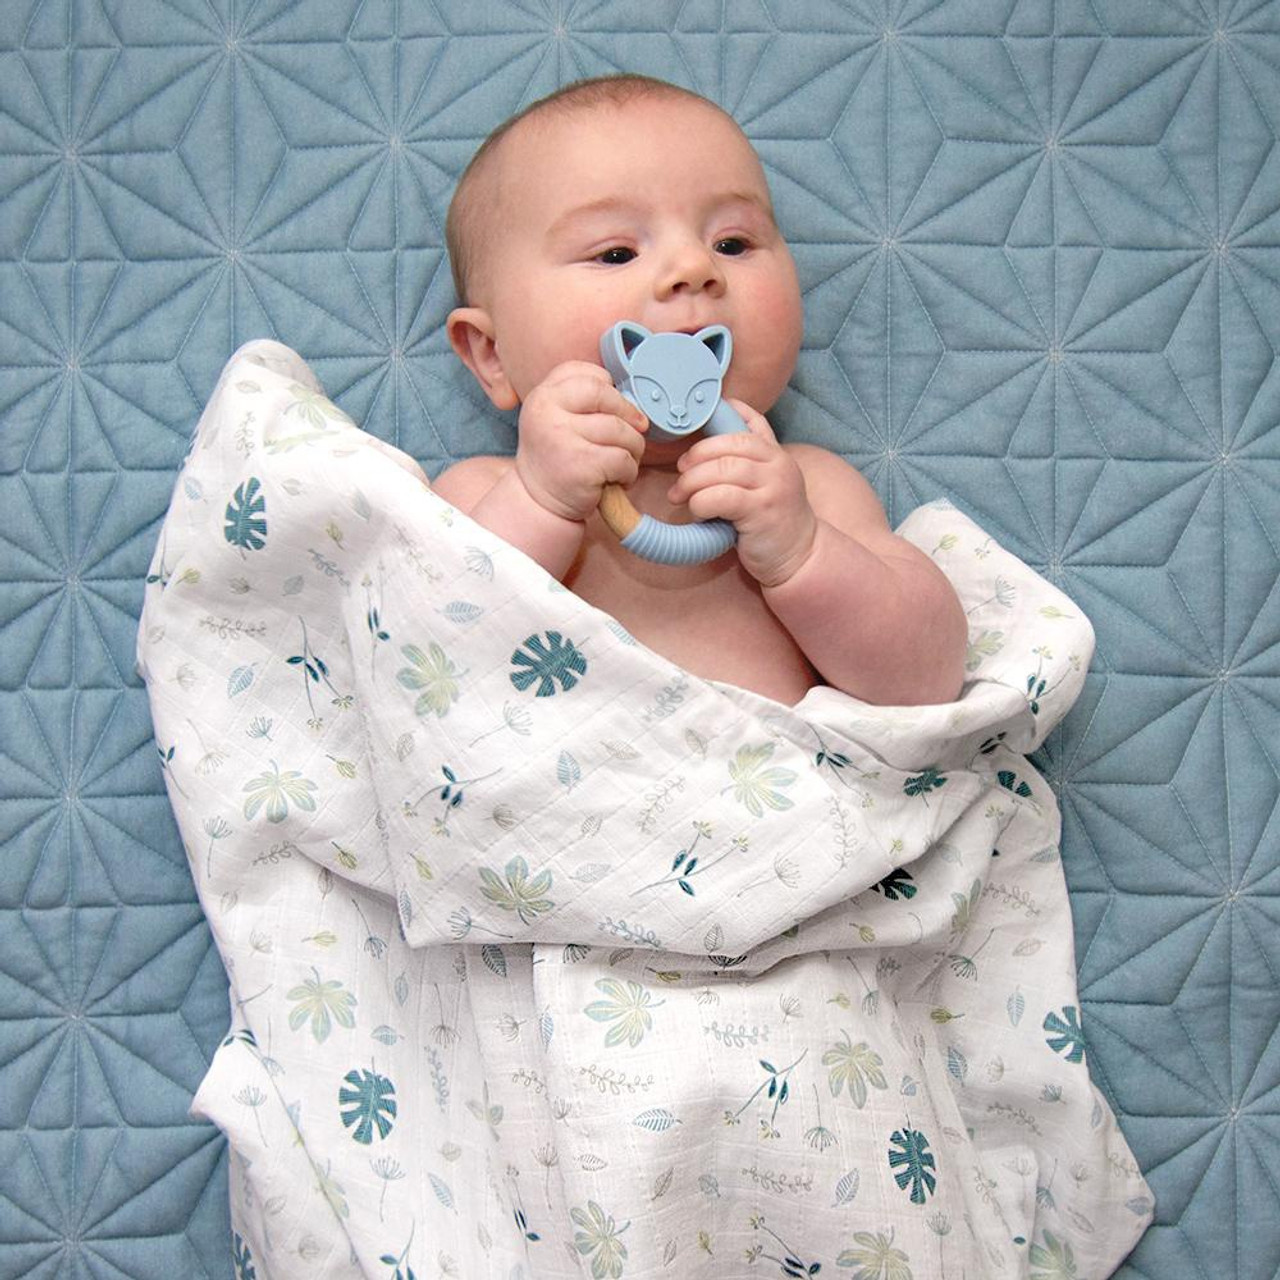 Living Textiles Organic Cotton 2pk Muslin Swaddles at Baby Barn Discounts Living Textile's luxuriously soft and silky 100% organic cotton muslin swaddles are an essential for baby.